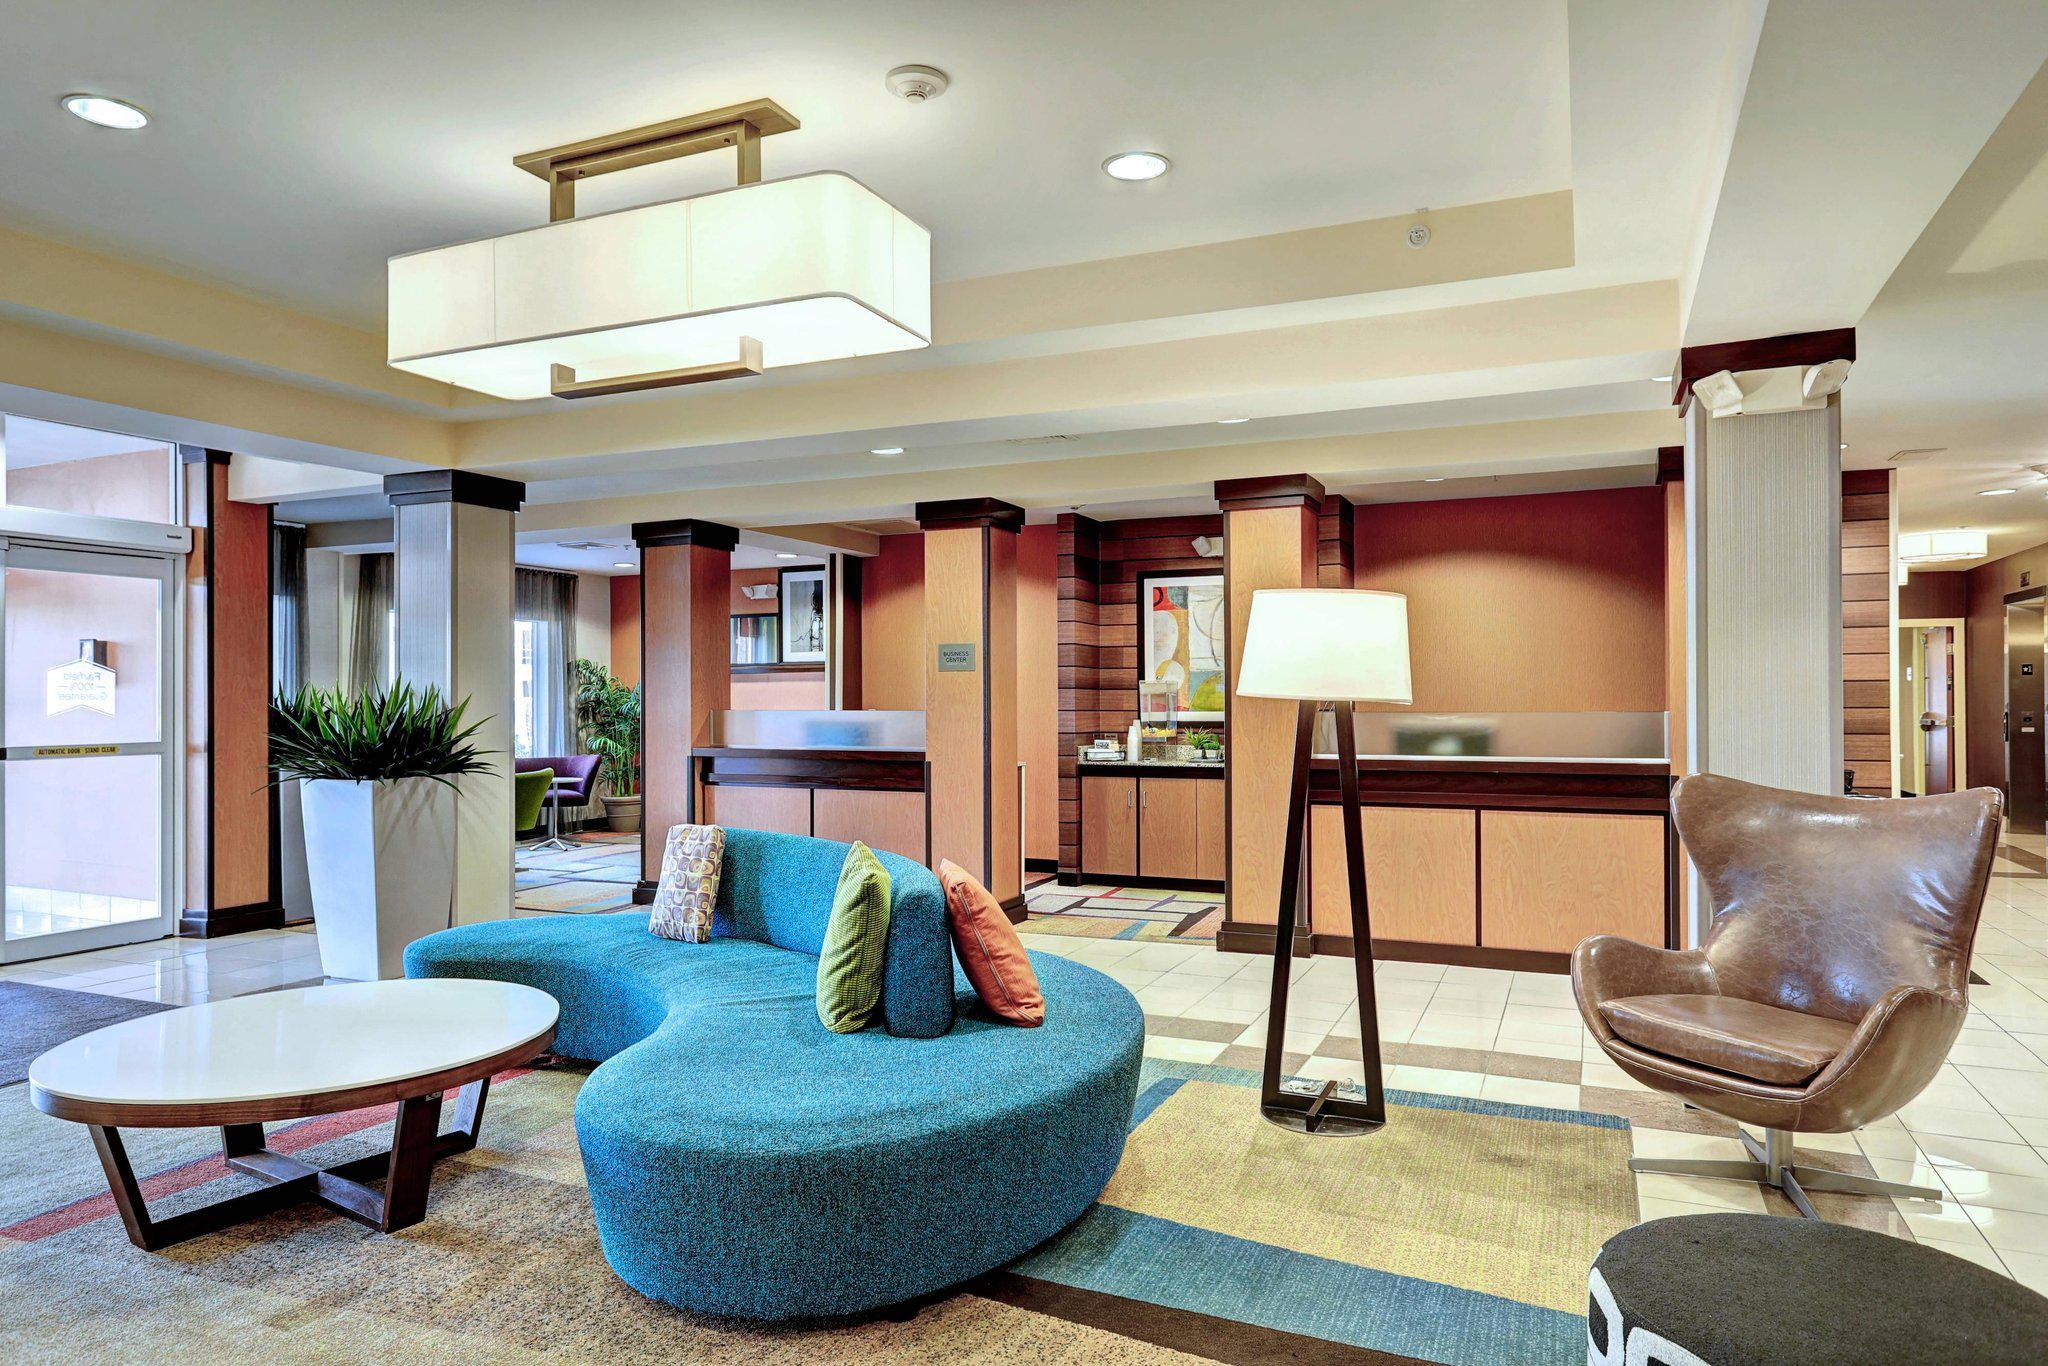 Fairfield Inn & Suites by Marriott Edison-South Plainfield